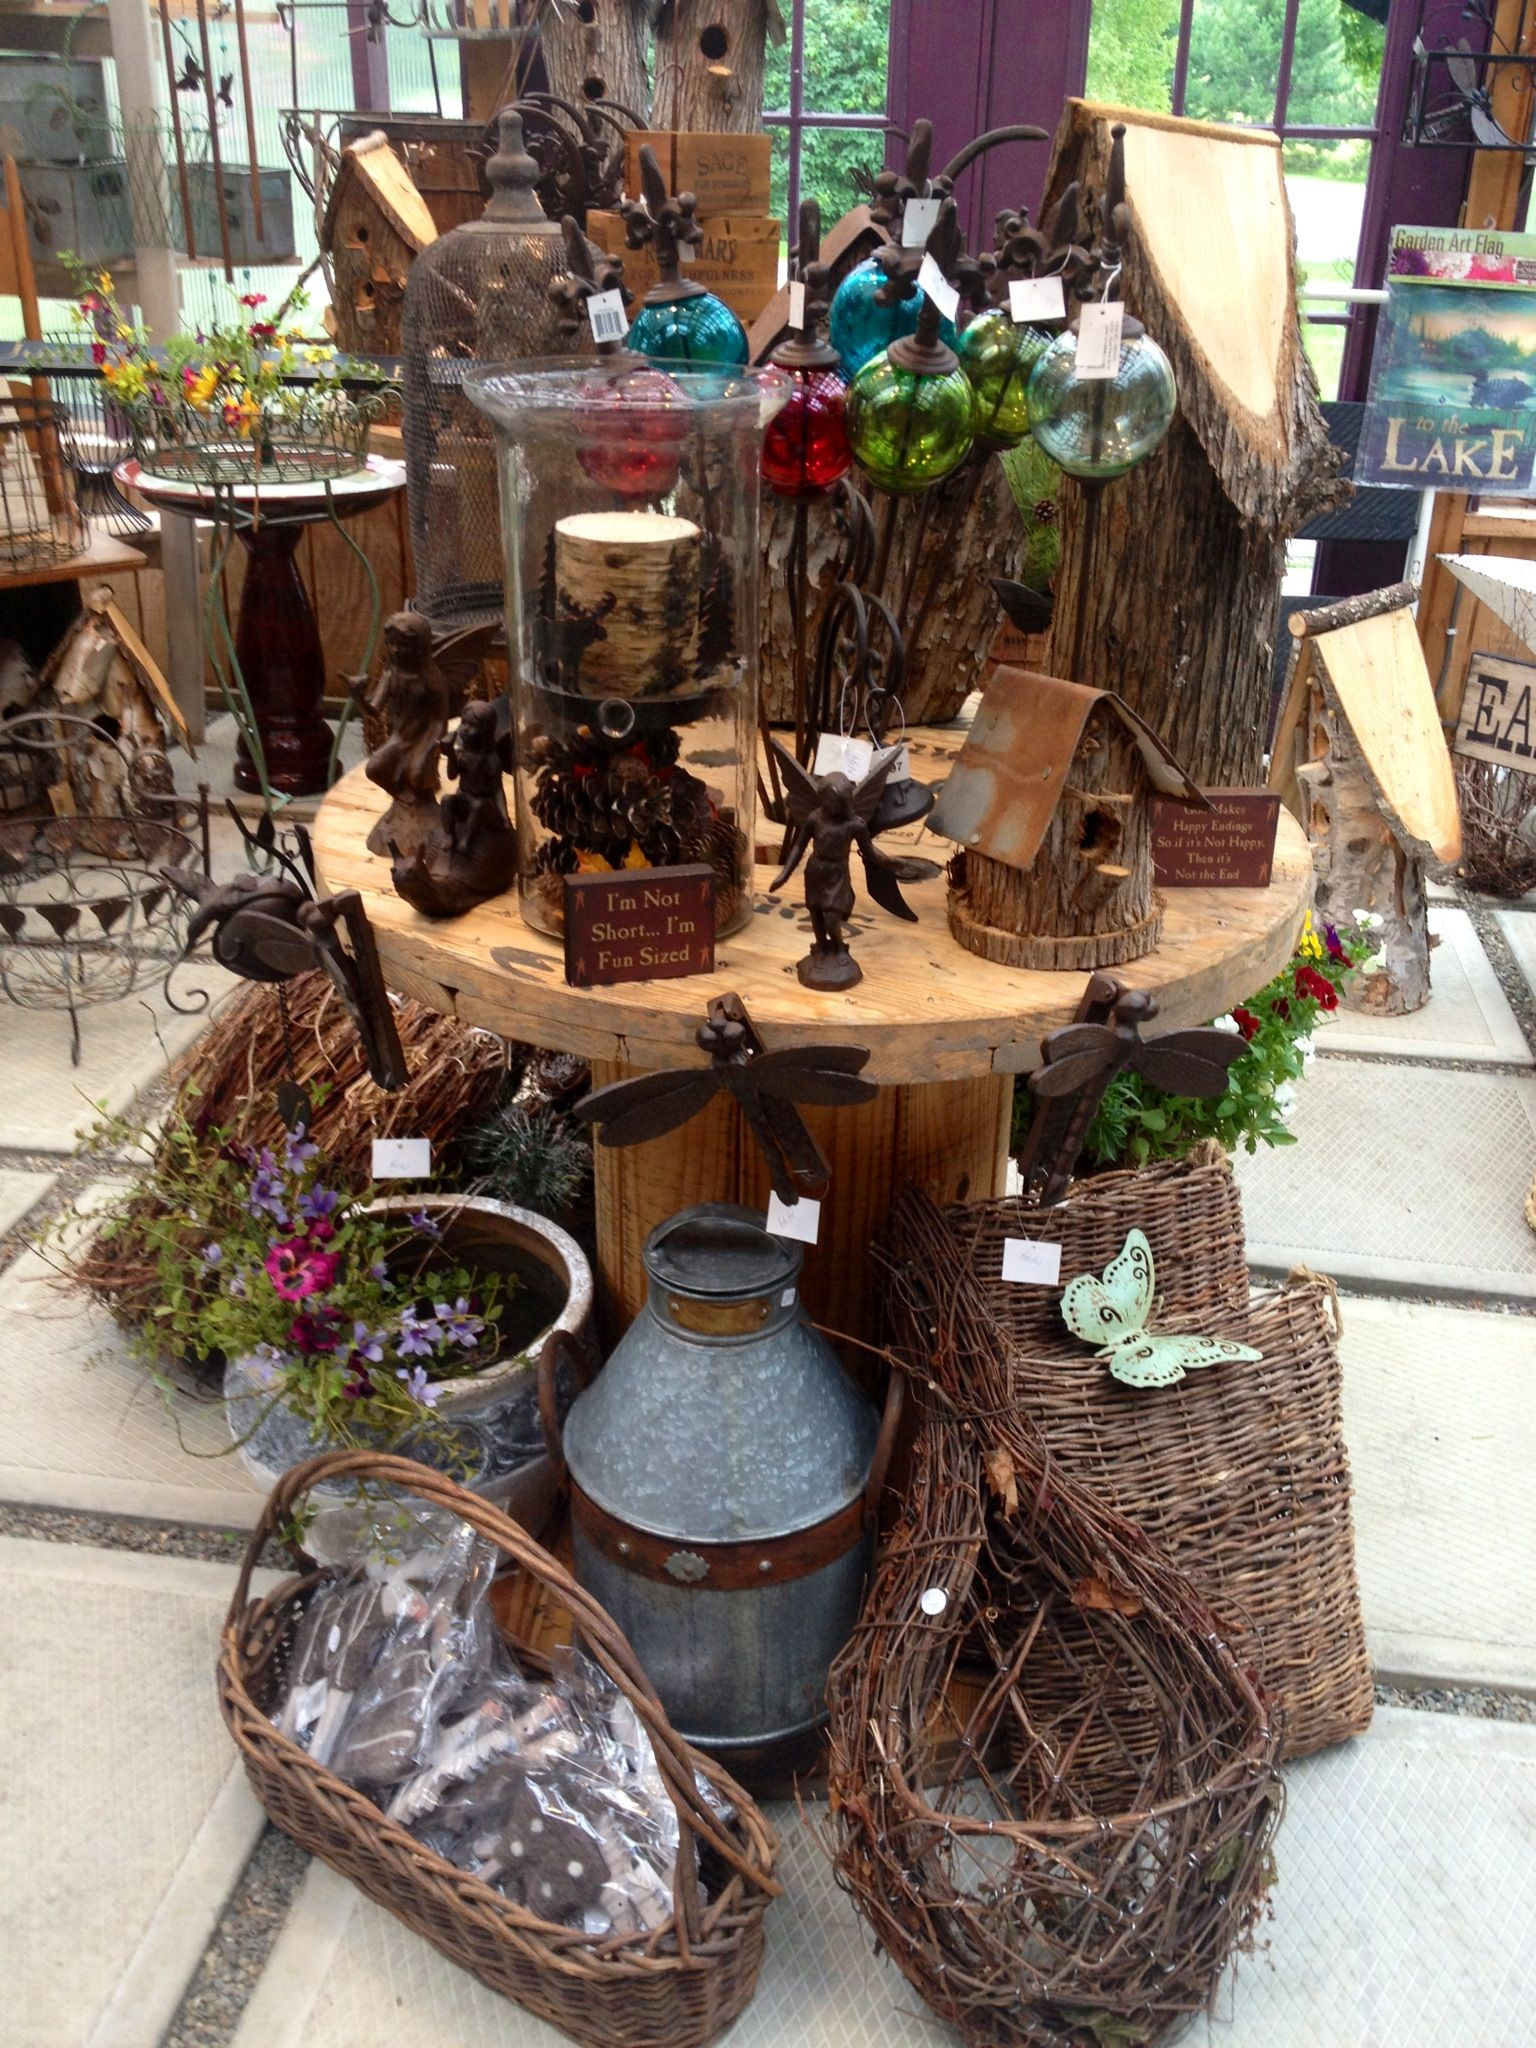 New Shipment Of Cast Iron Garden Decor Including Garden Fairies At  Ravenswood Gifts! Be Sure